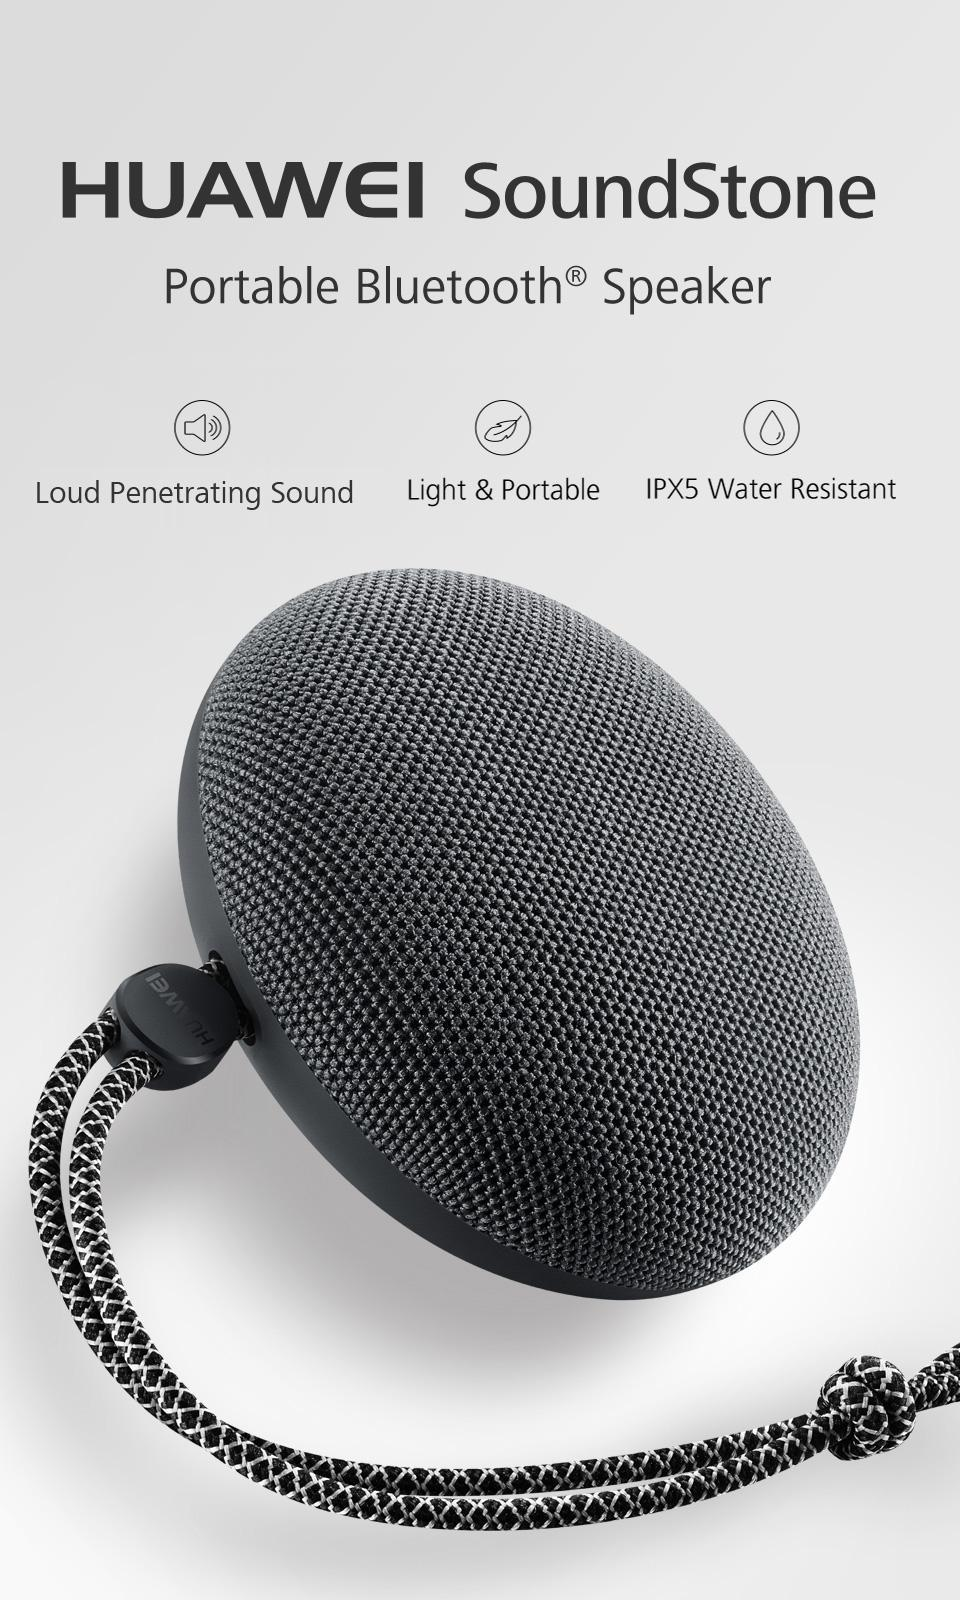 Huawei Soundstone Portable Bluetooth Speaker Huawei Bangladesh